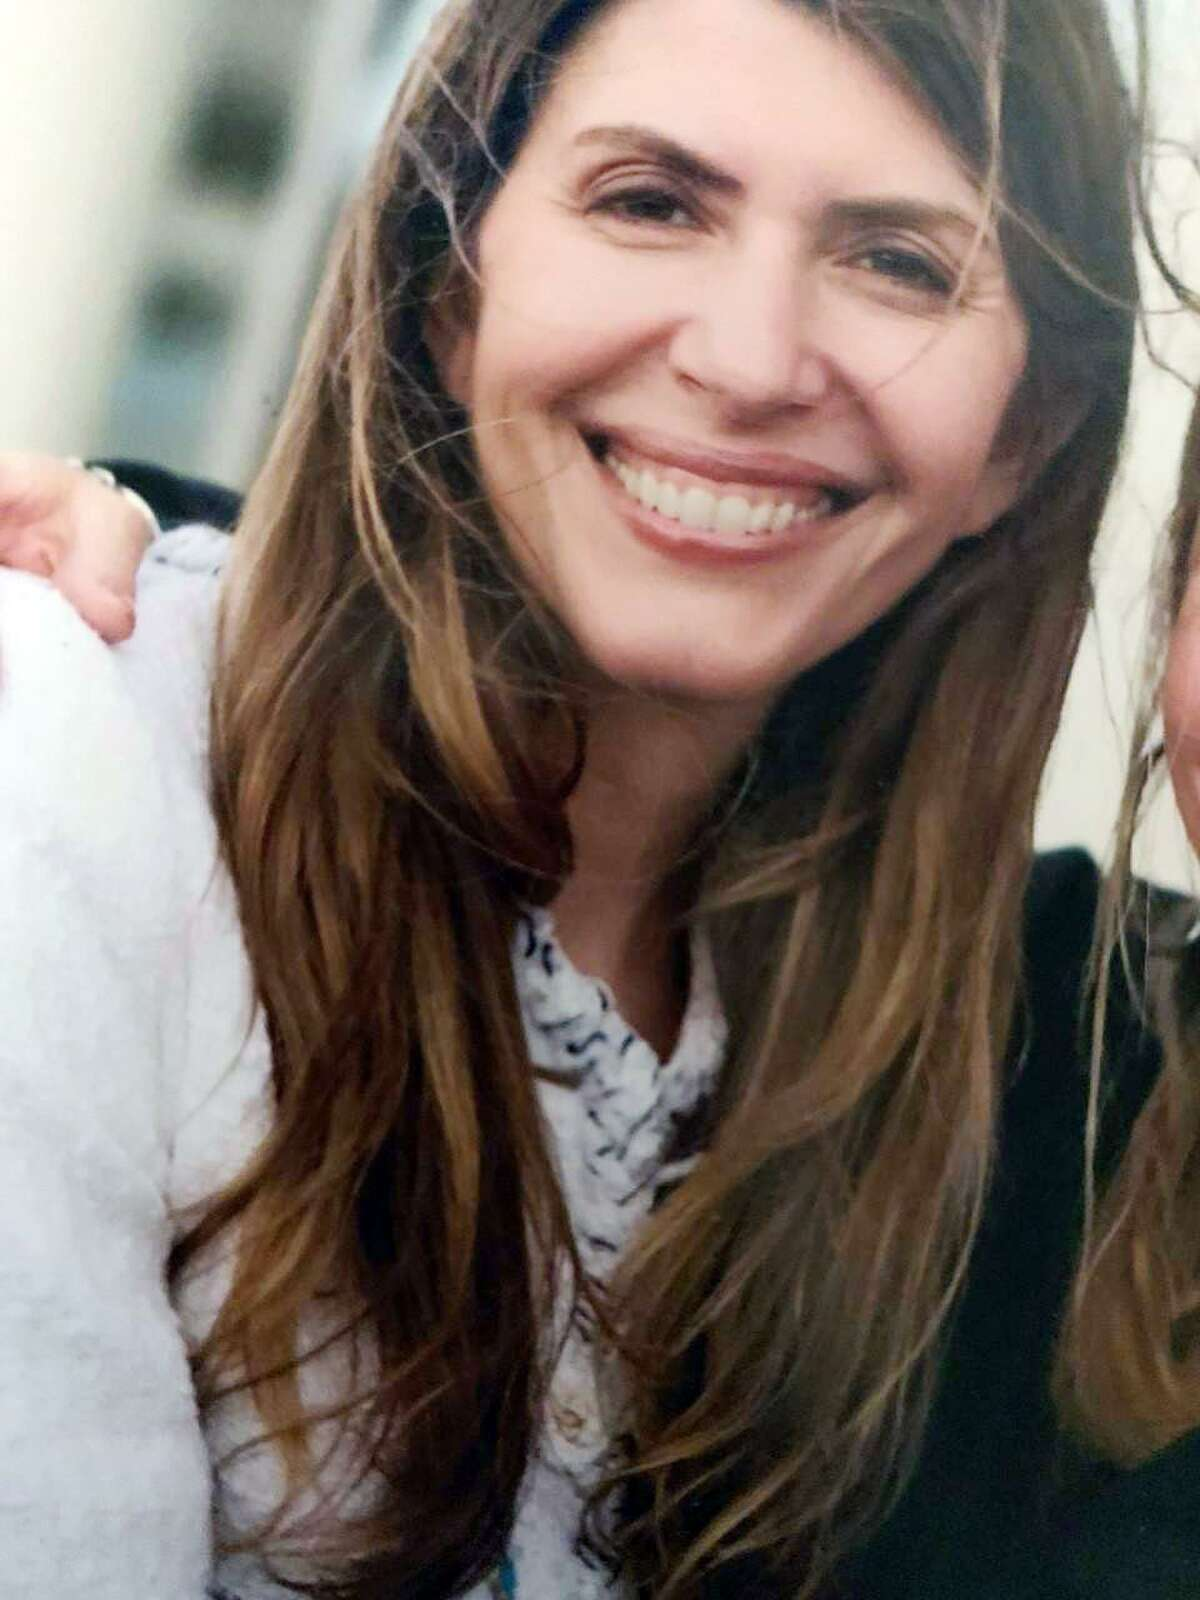 New Canaan Police are searching for Jennifer Dulos, 50, who was reported missing Friday, May 24, 2019.